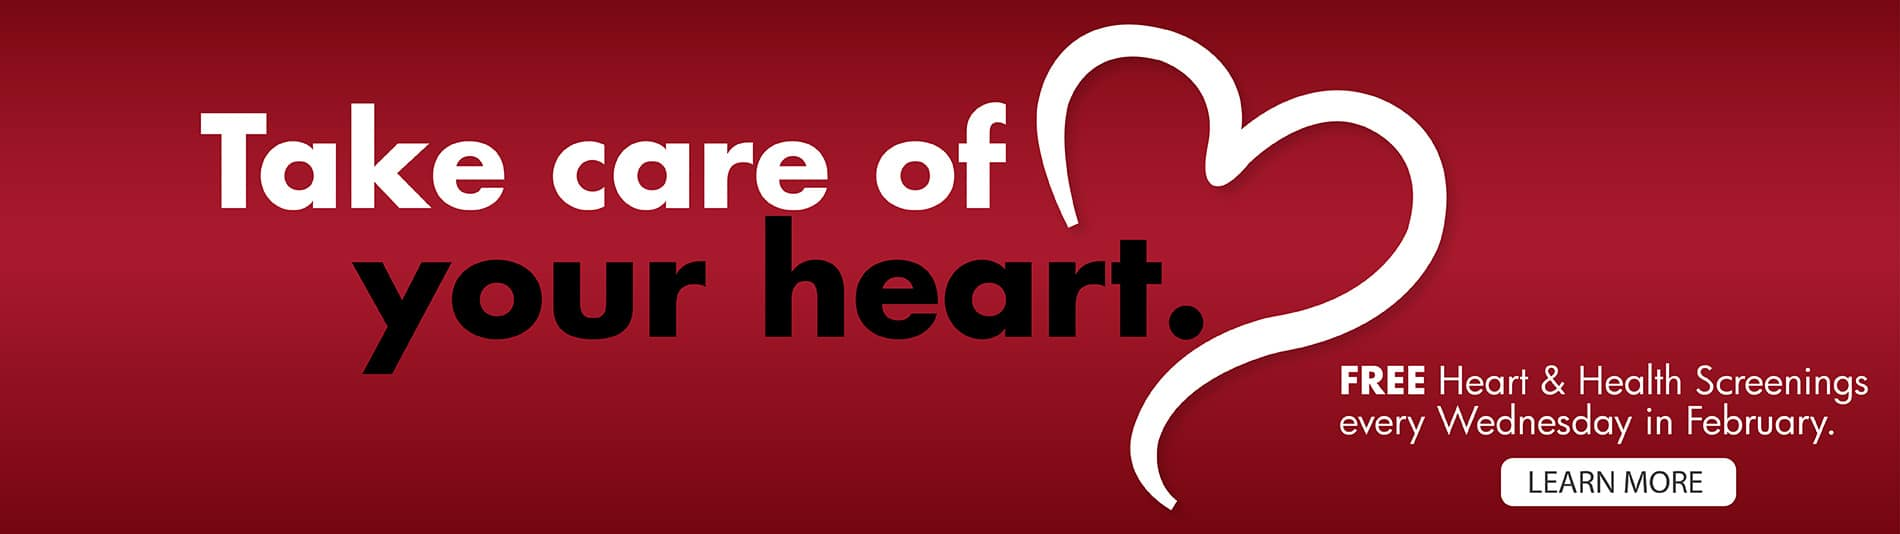 Take care of your heart - free heart and health screenings every Wednesday in February. Click here.